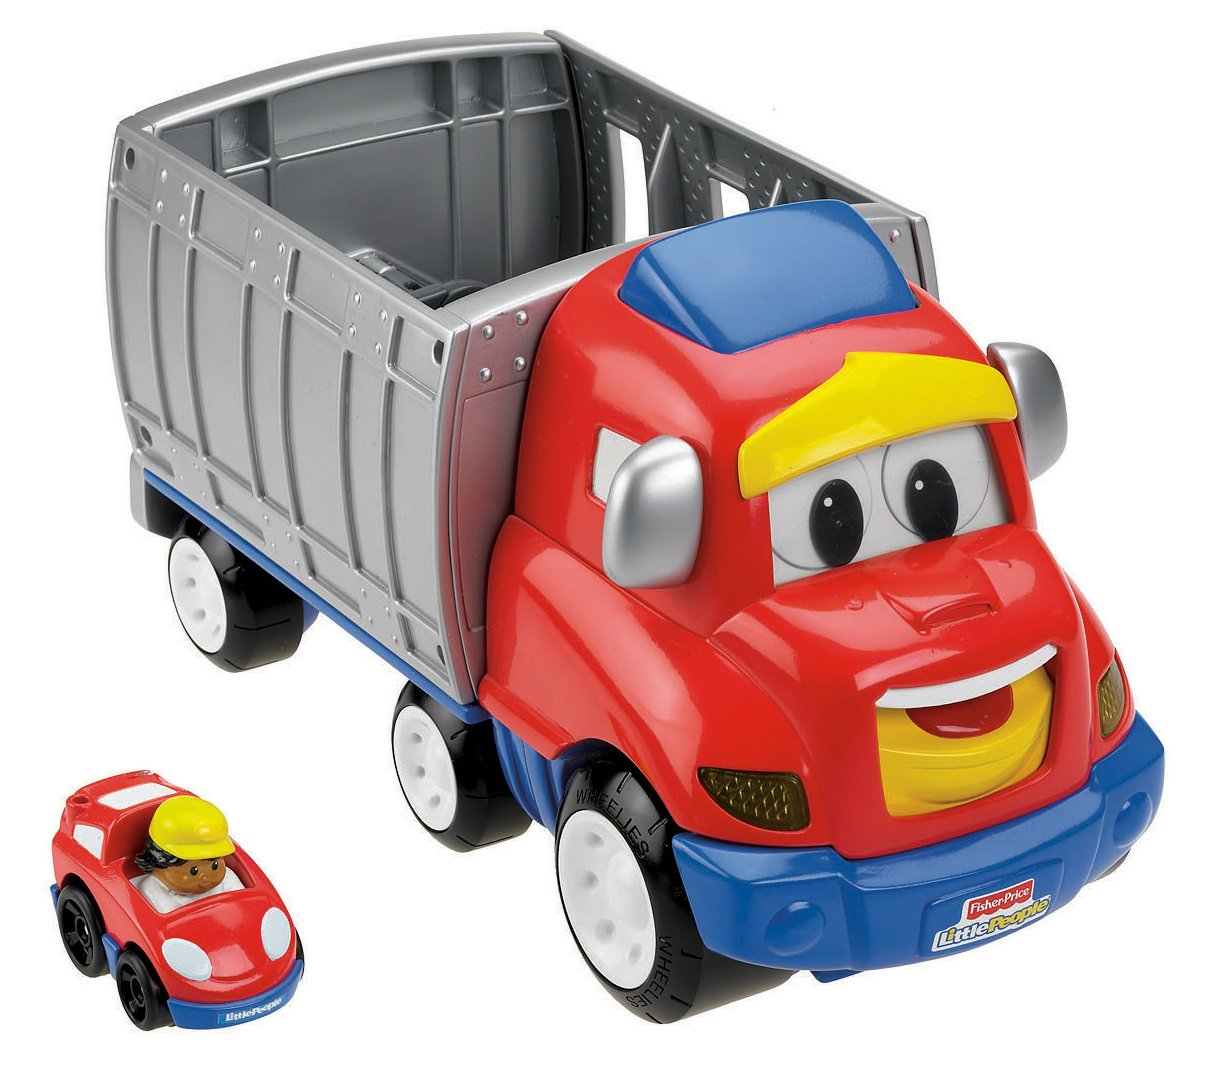 Large Toy Trucks For Boys : Top toddler toys for christmas it s baby time